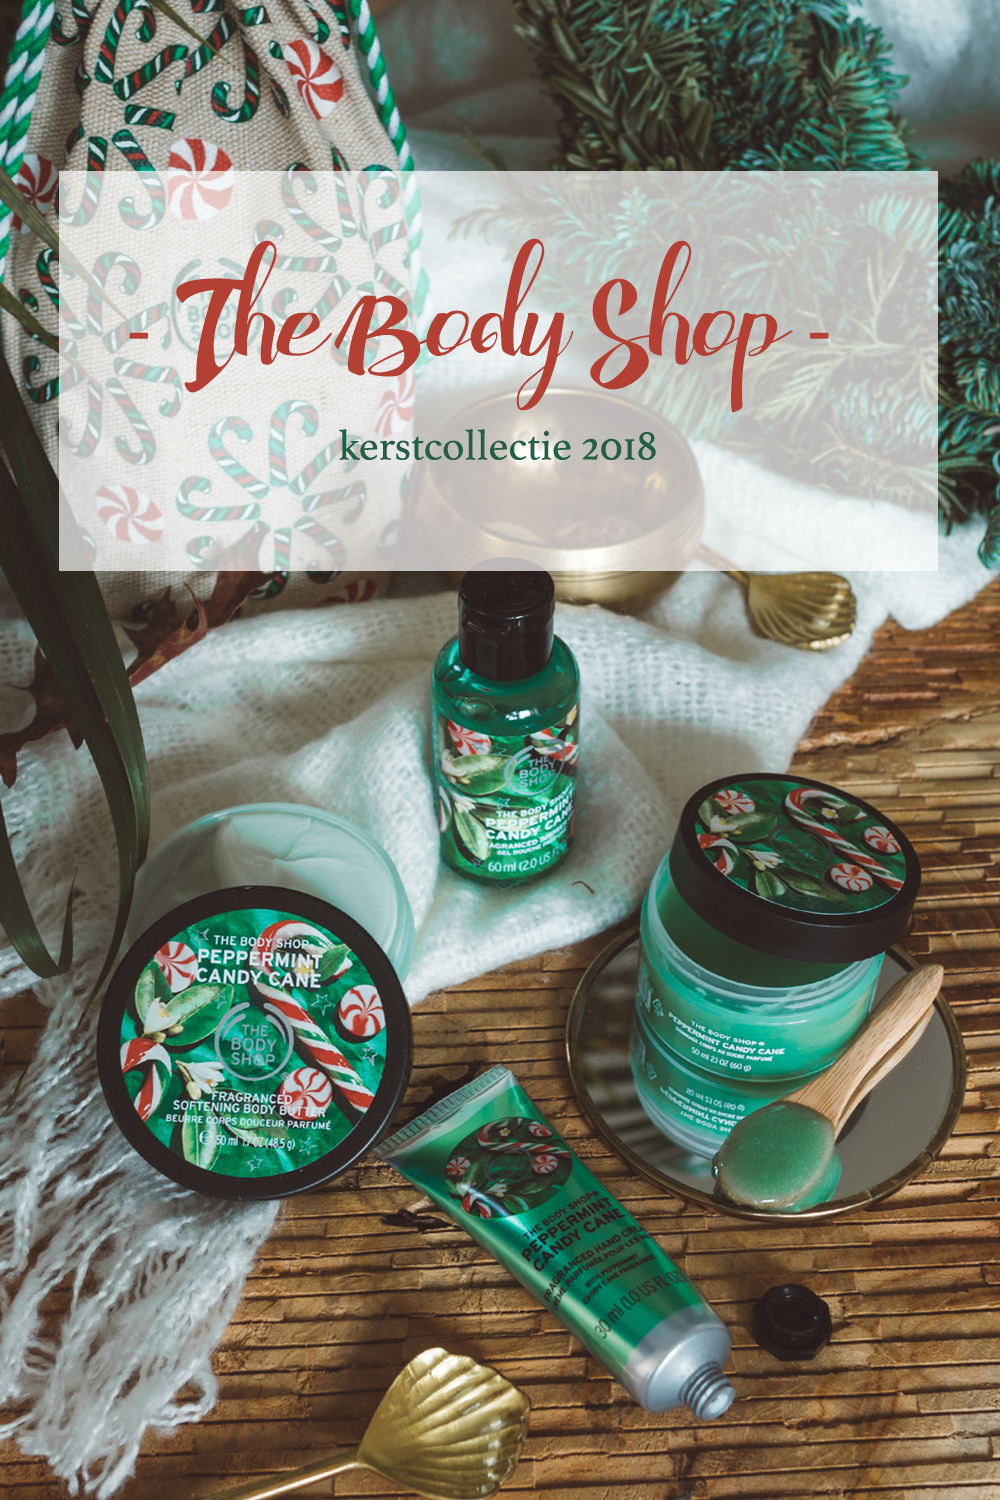 The Body Shop Kerstcollectie 2018 Enchanted by Nature